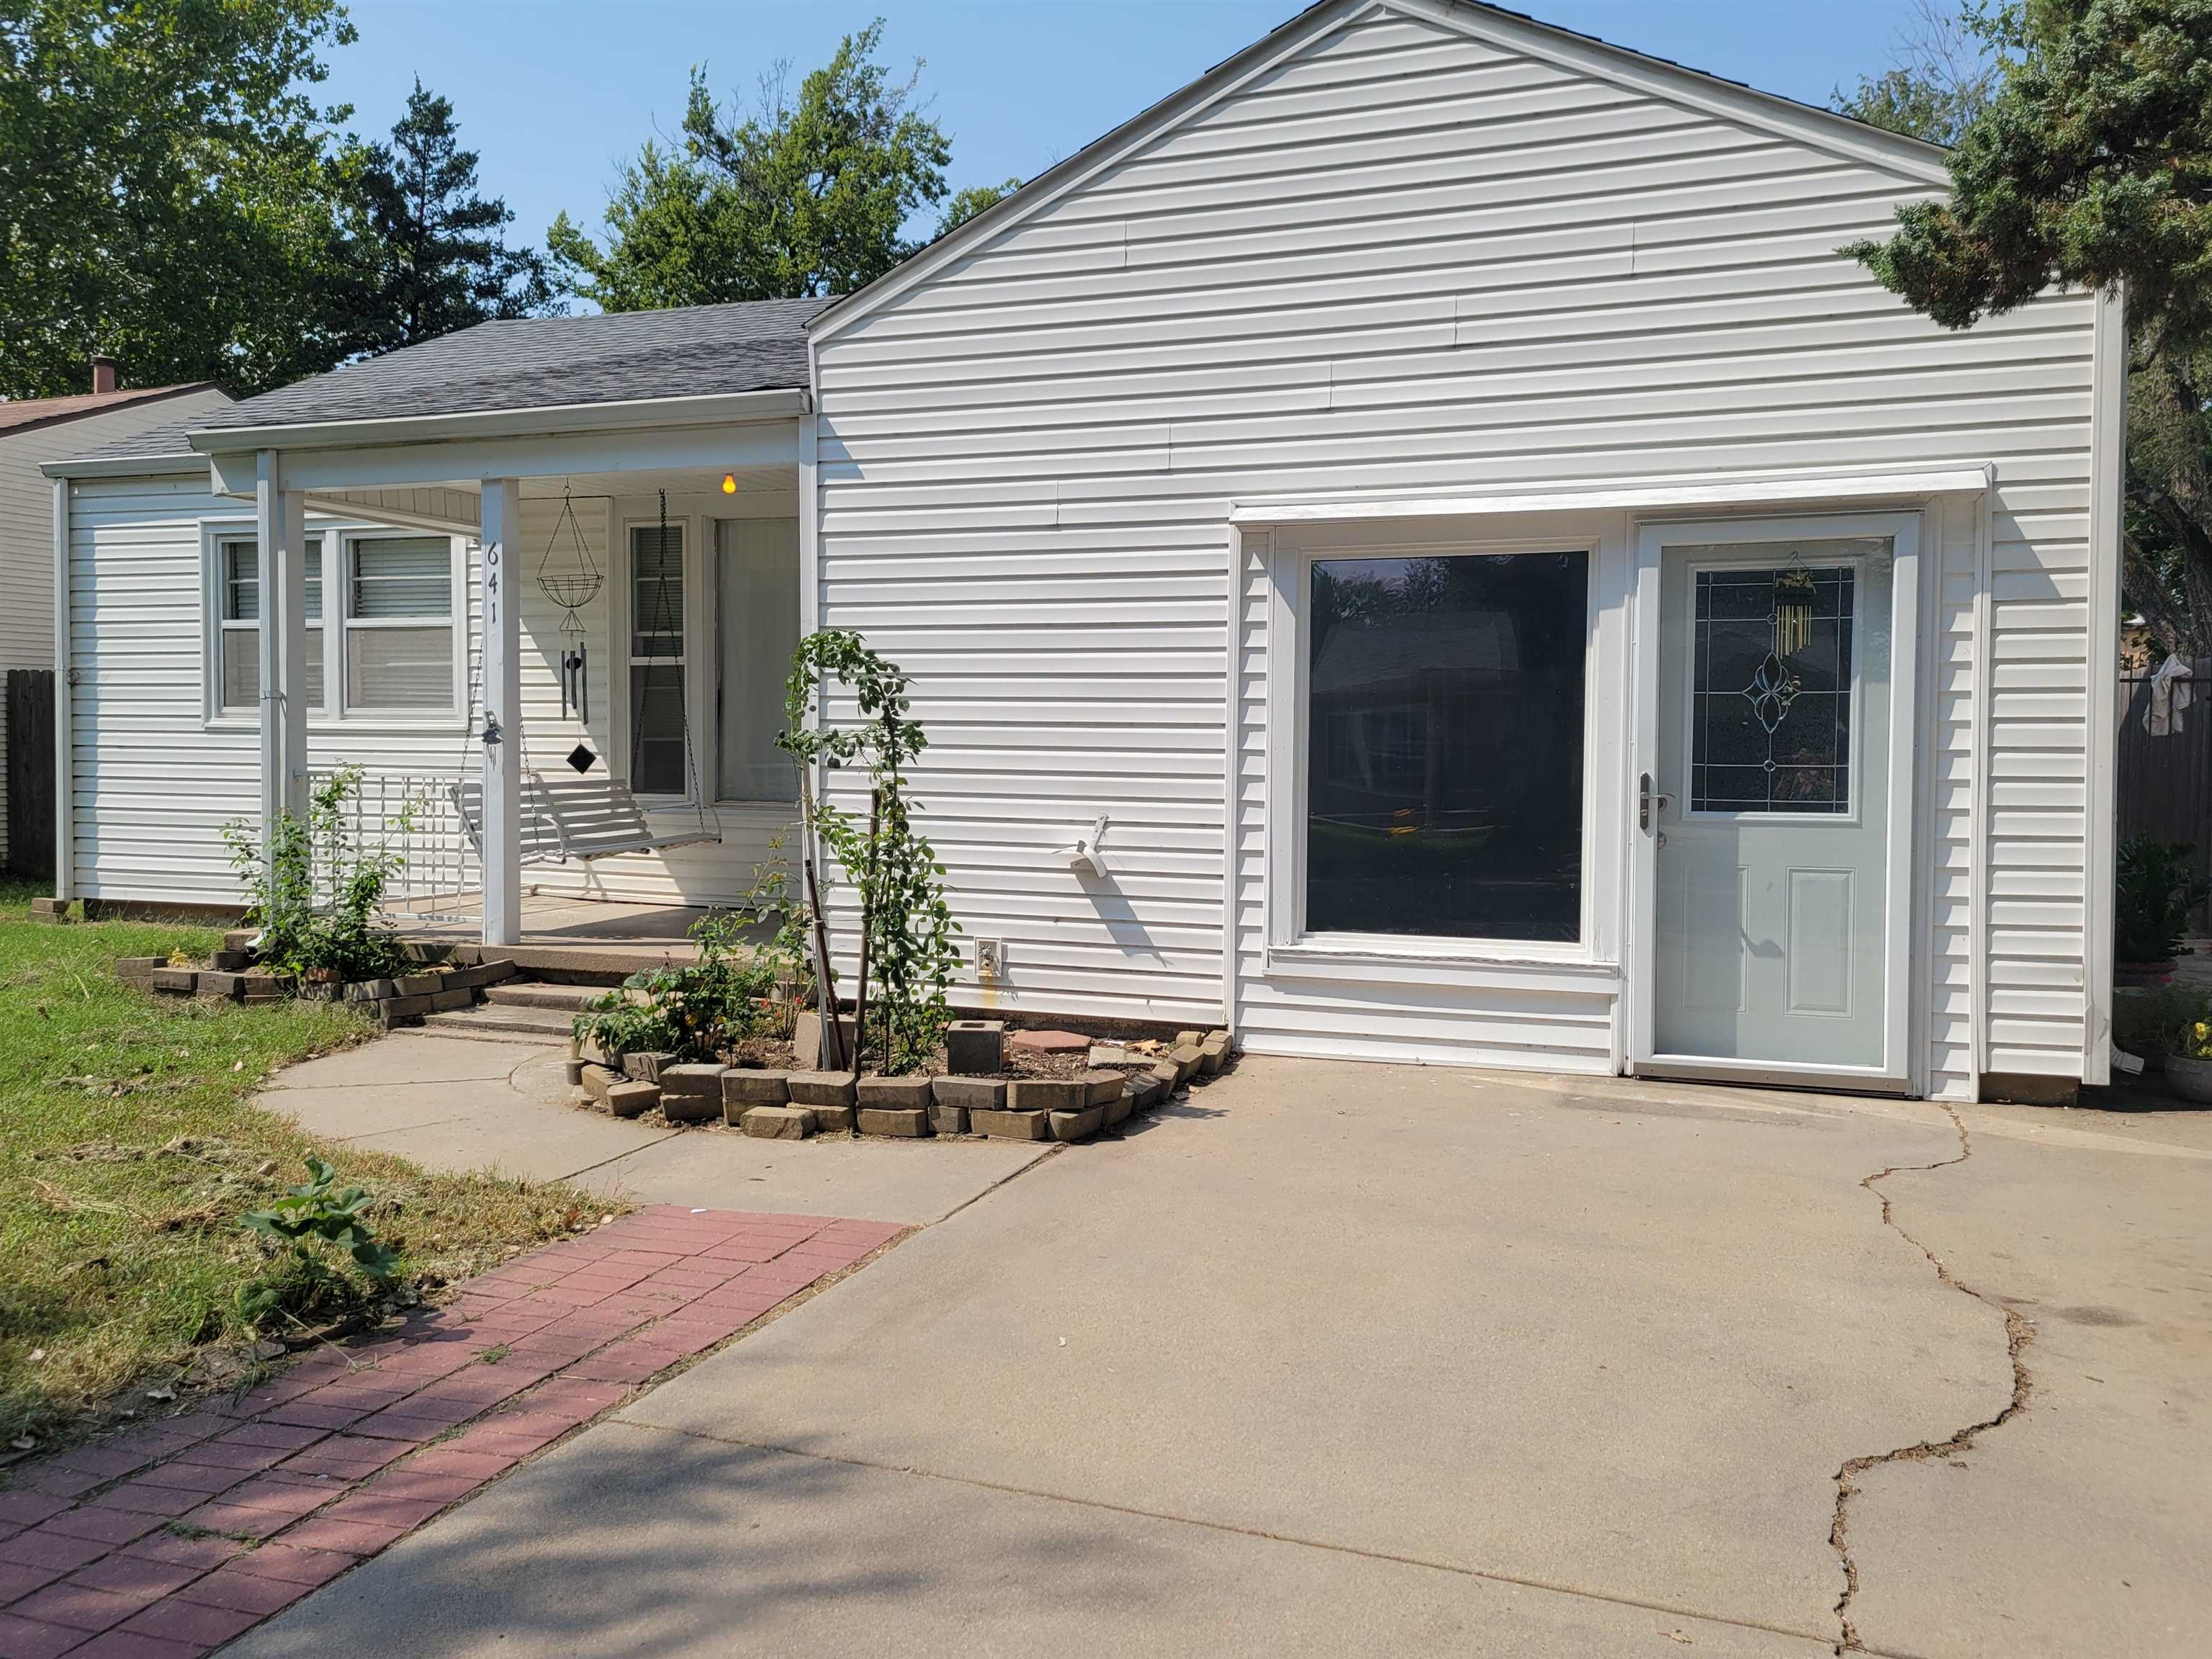 Move in ready on this wonderful ranch home. With 3 bedrooms and 2 full baths. Bonus room can be converted back into a 1 car garage. New Fridge installed about 2 years ago including the toilets and HVAC units.